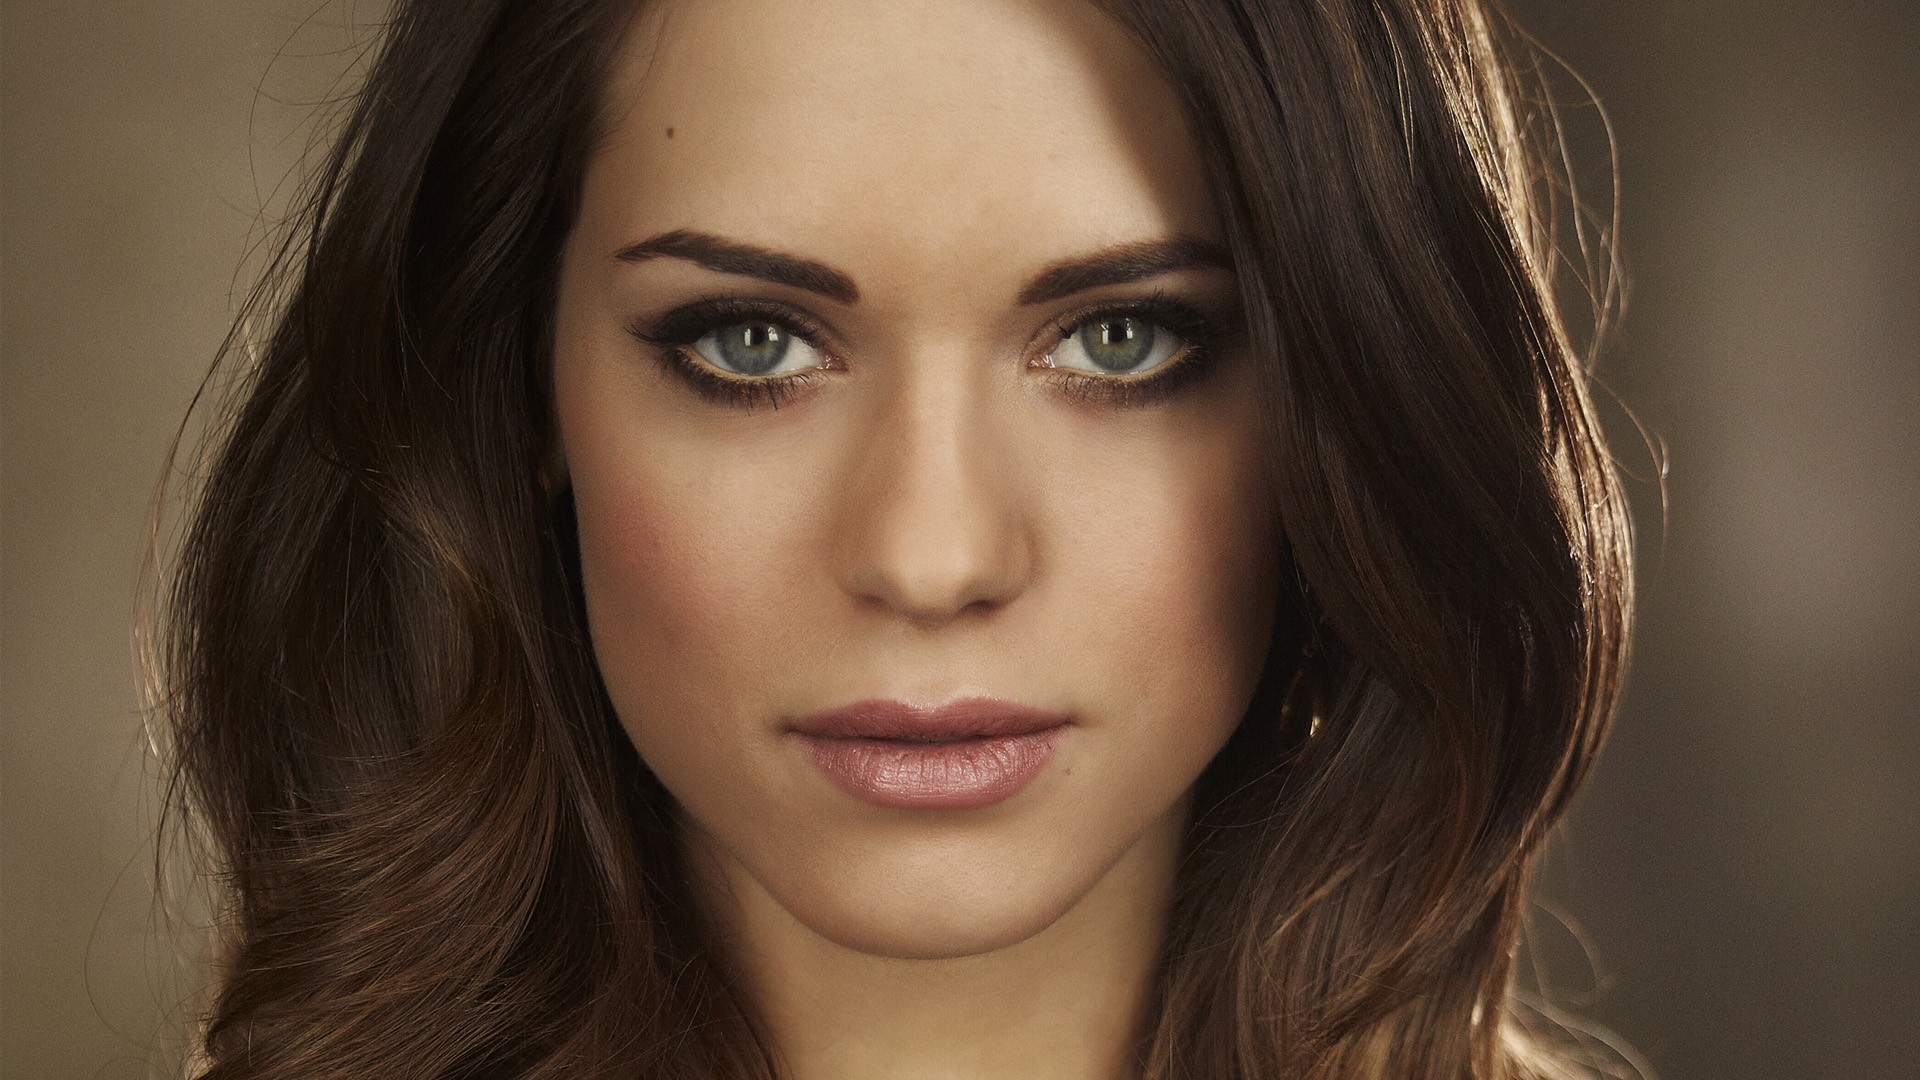 High Resolution Wallpaper | Lyndsy Fonseca 1920x1080 px